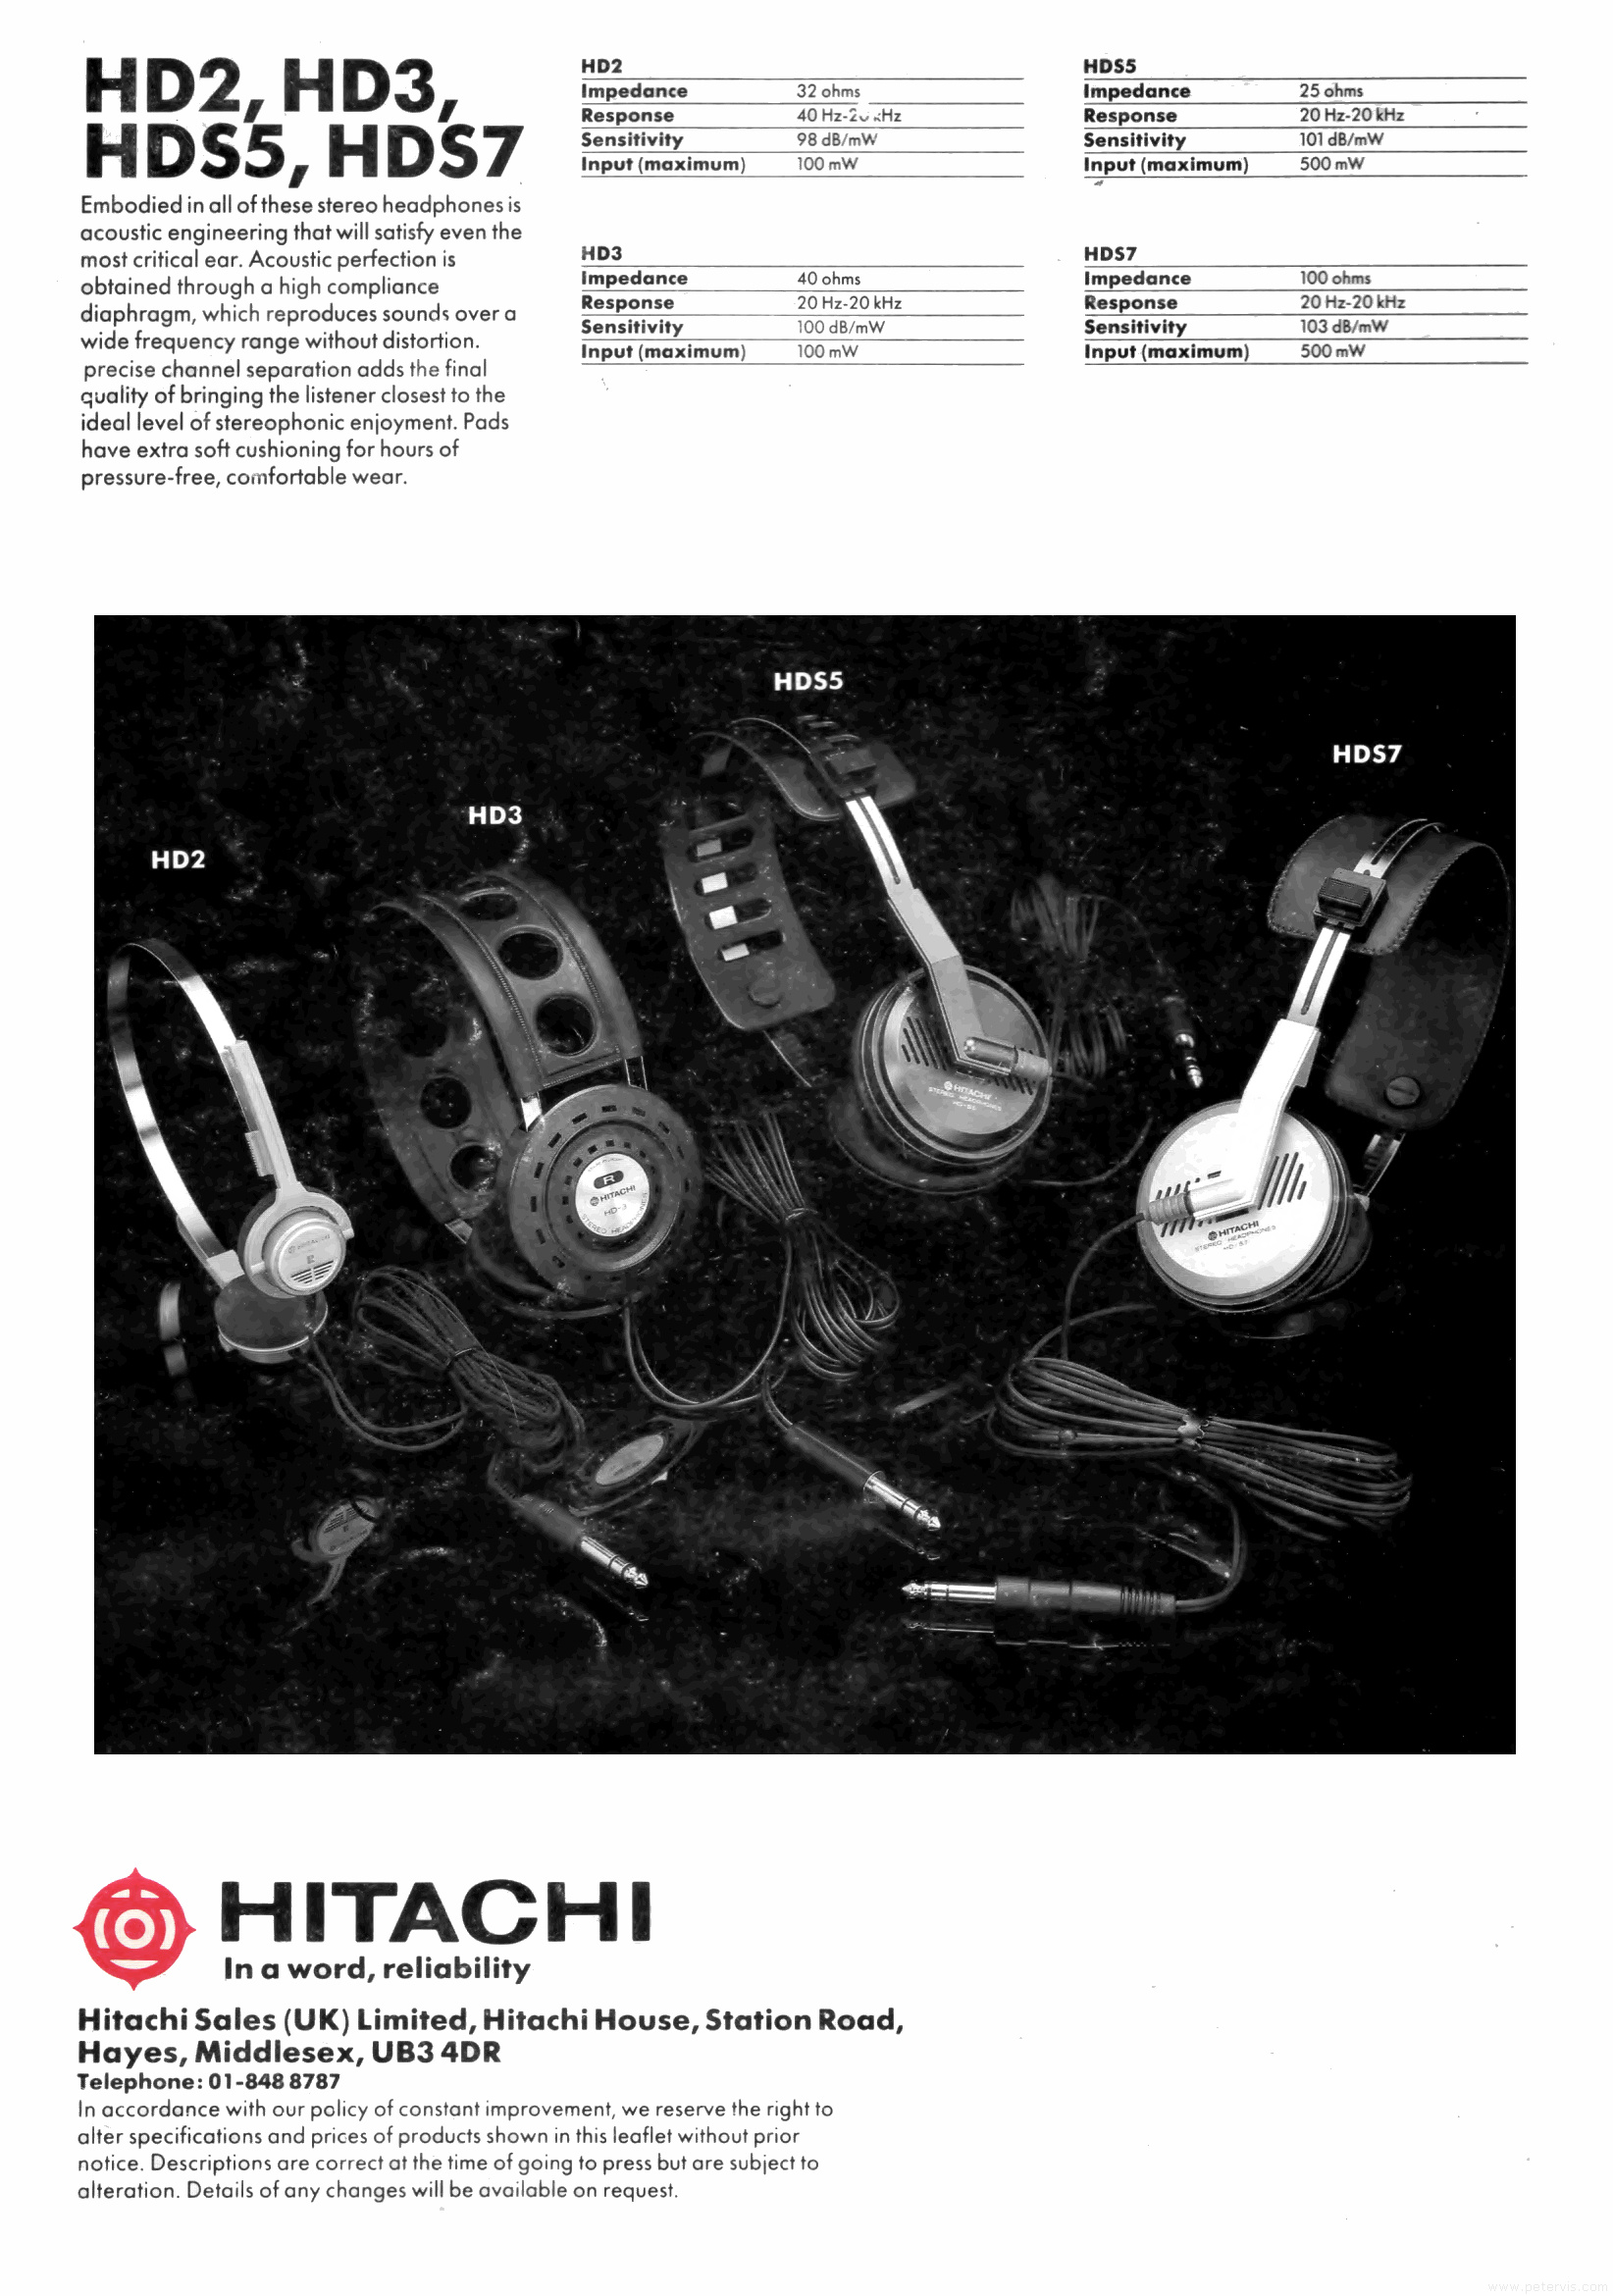 Hitachi-headphones.jpg